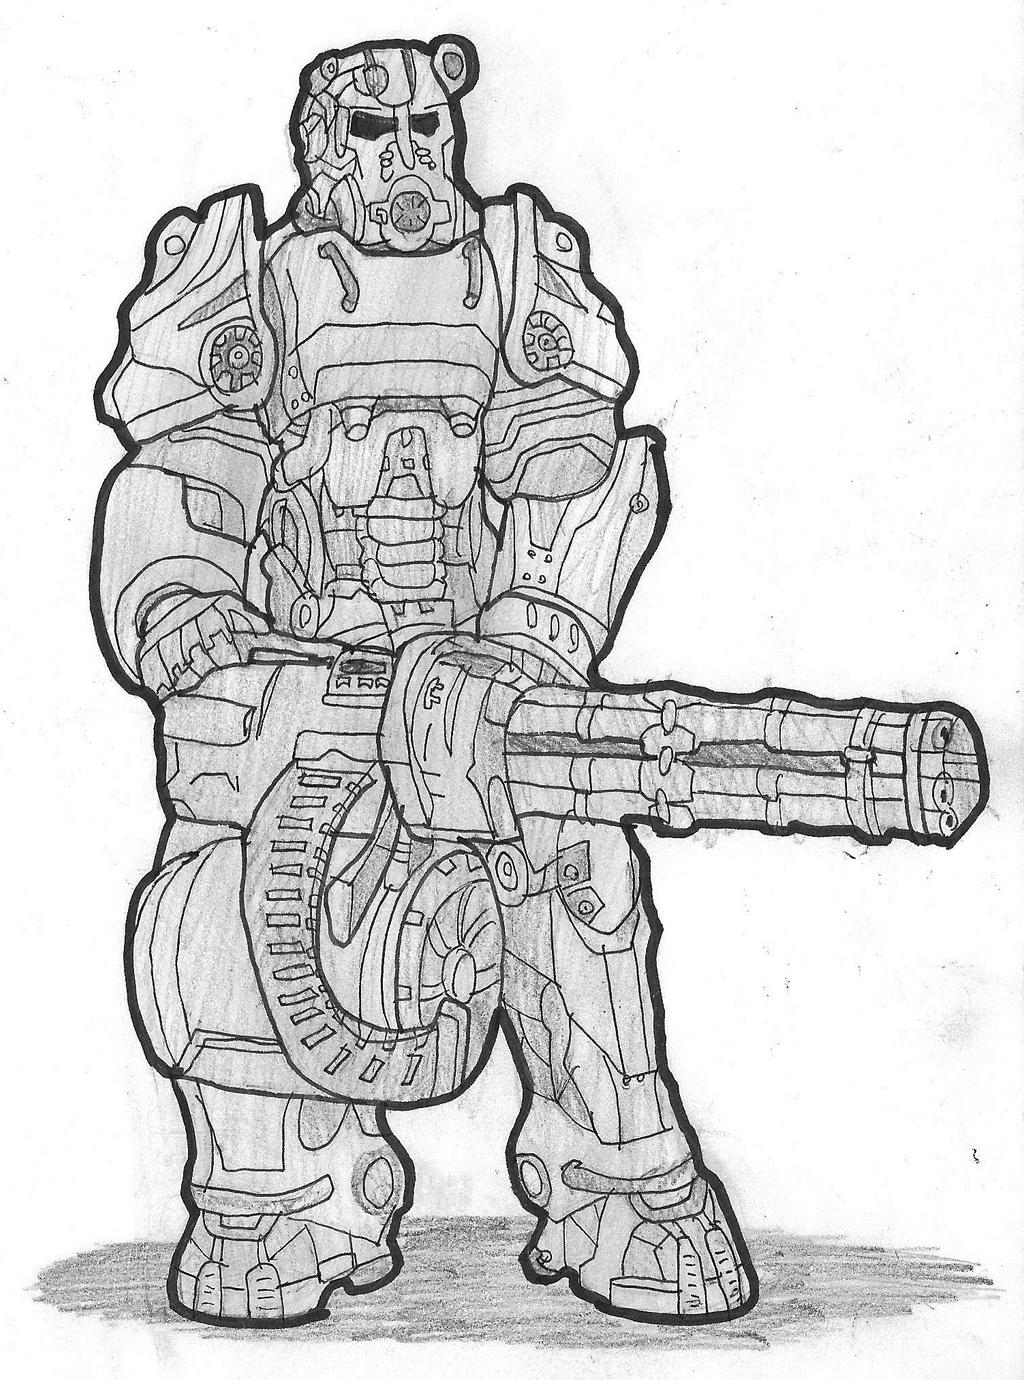 Fallout 4: Power Armor by DWestmoore on DeviantArt